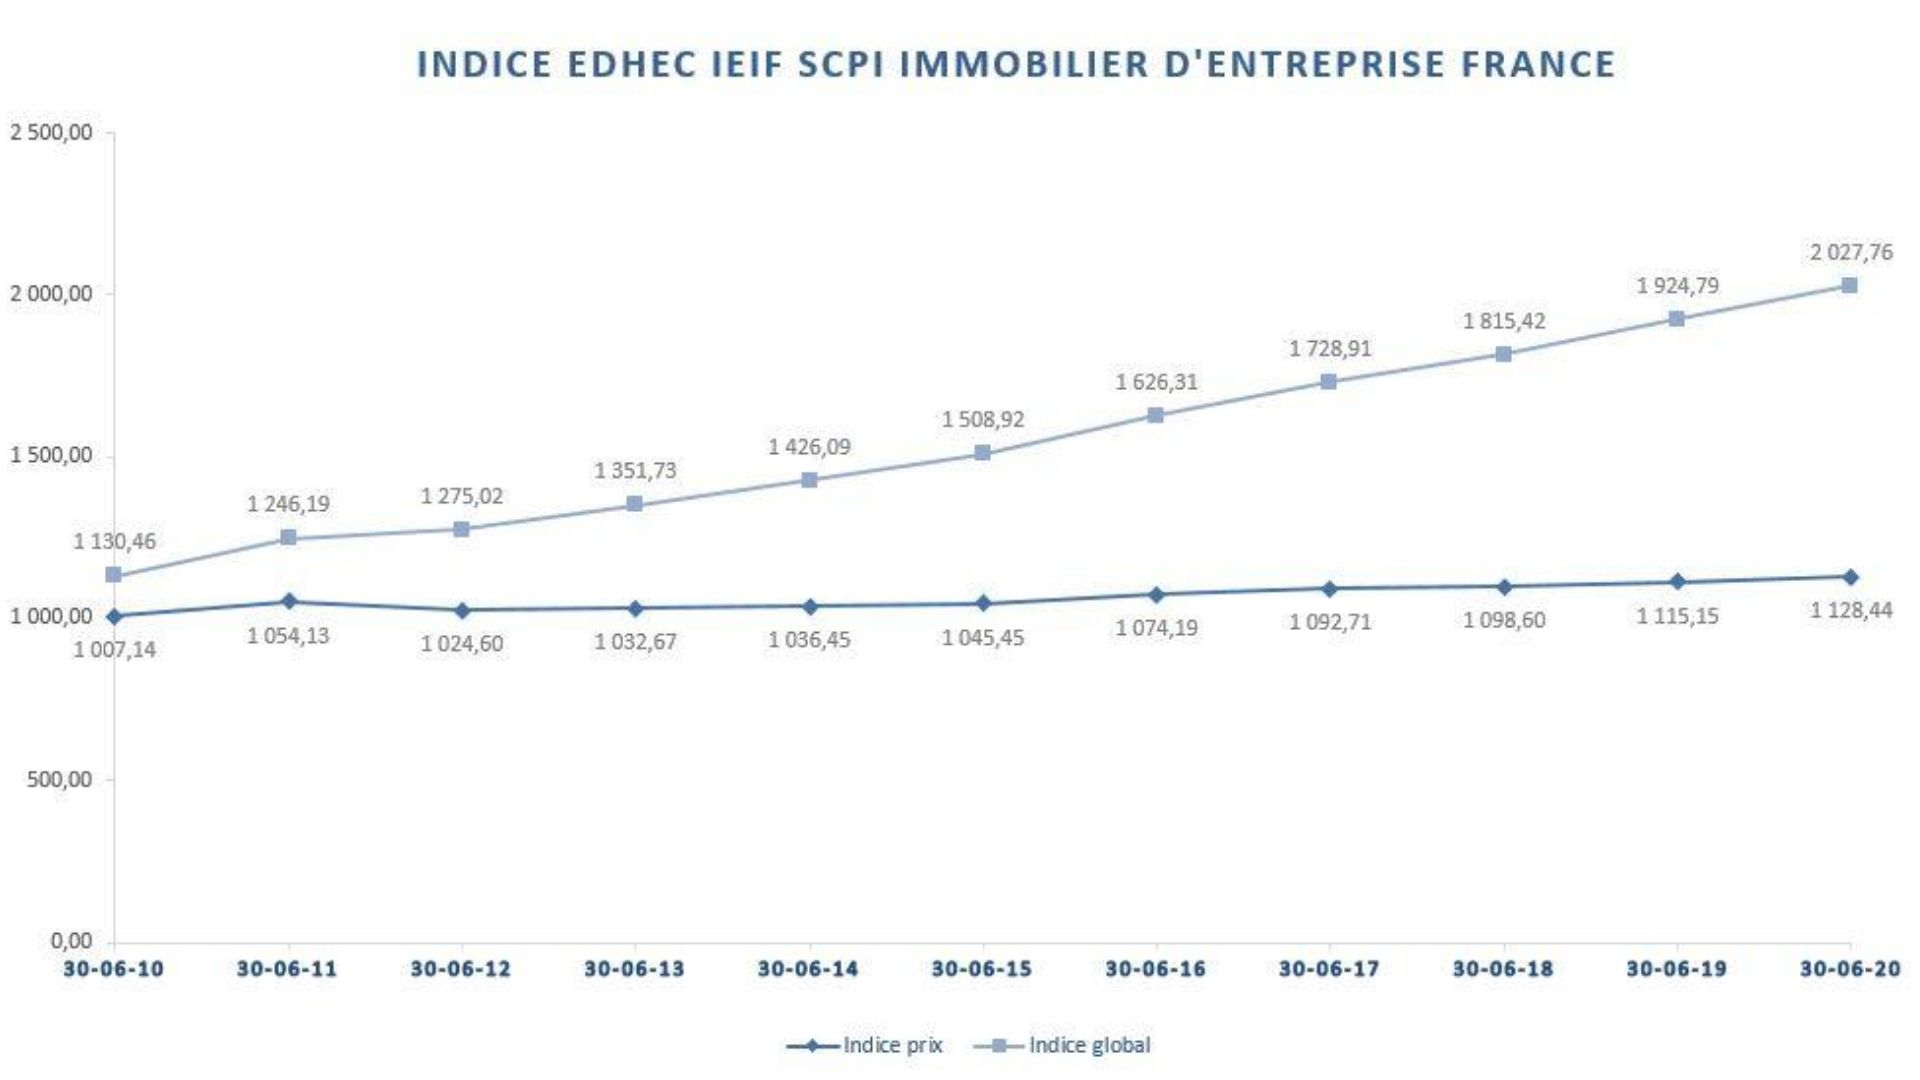 Indice_EDHEC_IEIF_SCPI_Immobilier_d'entreprise_France